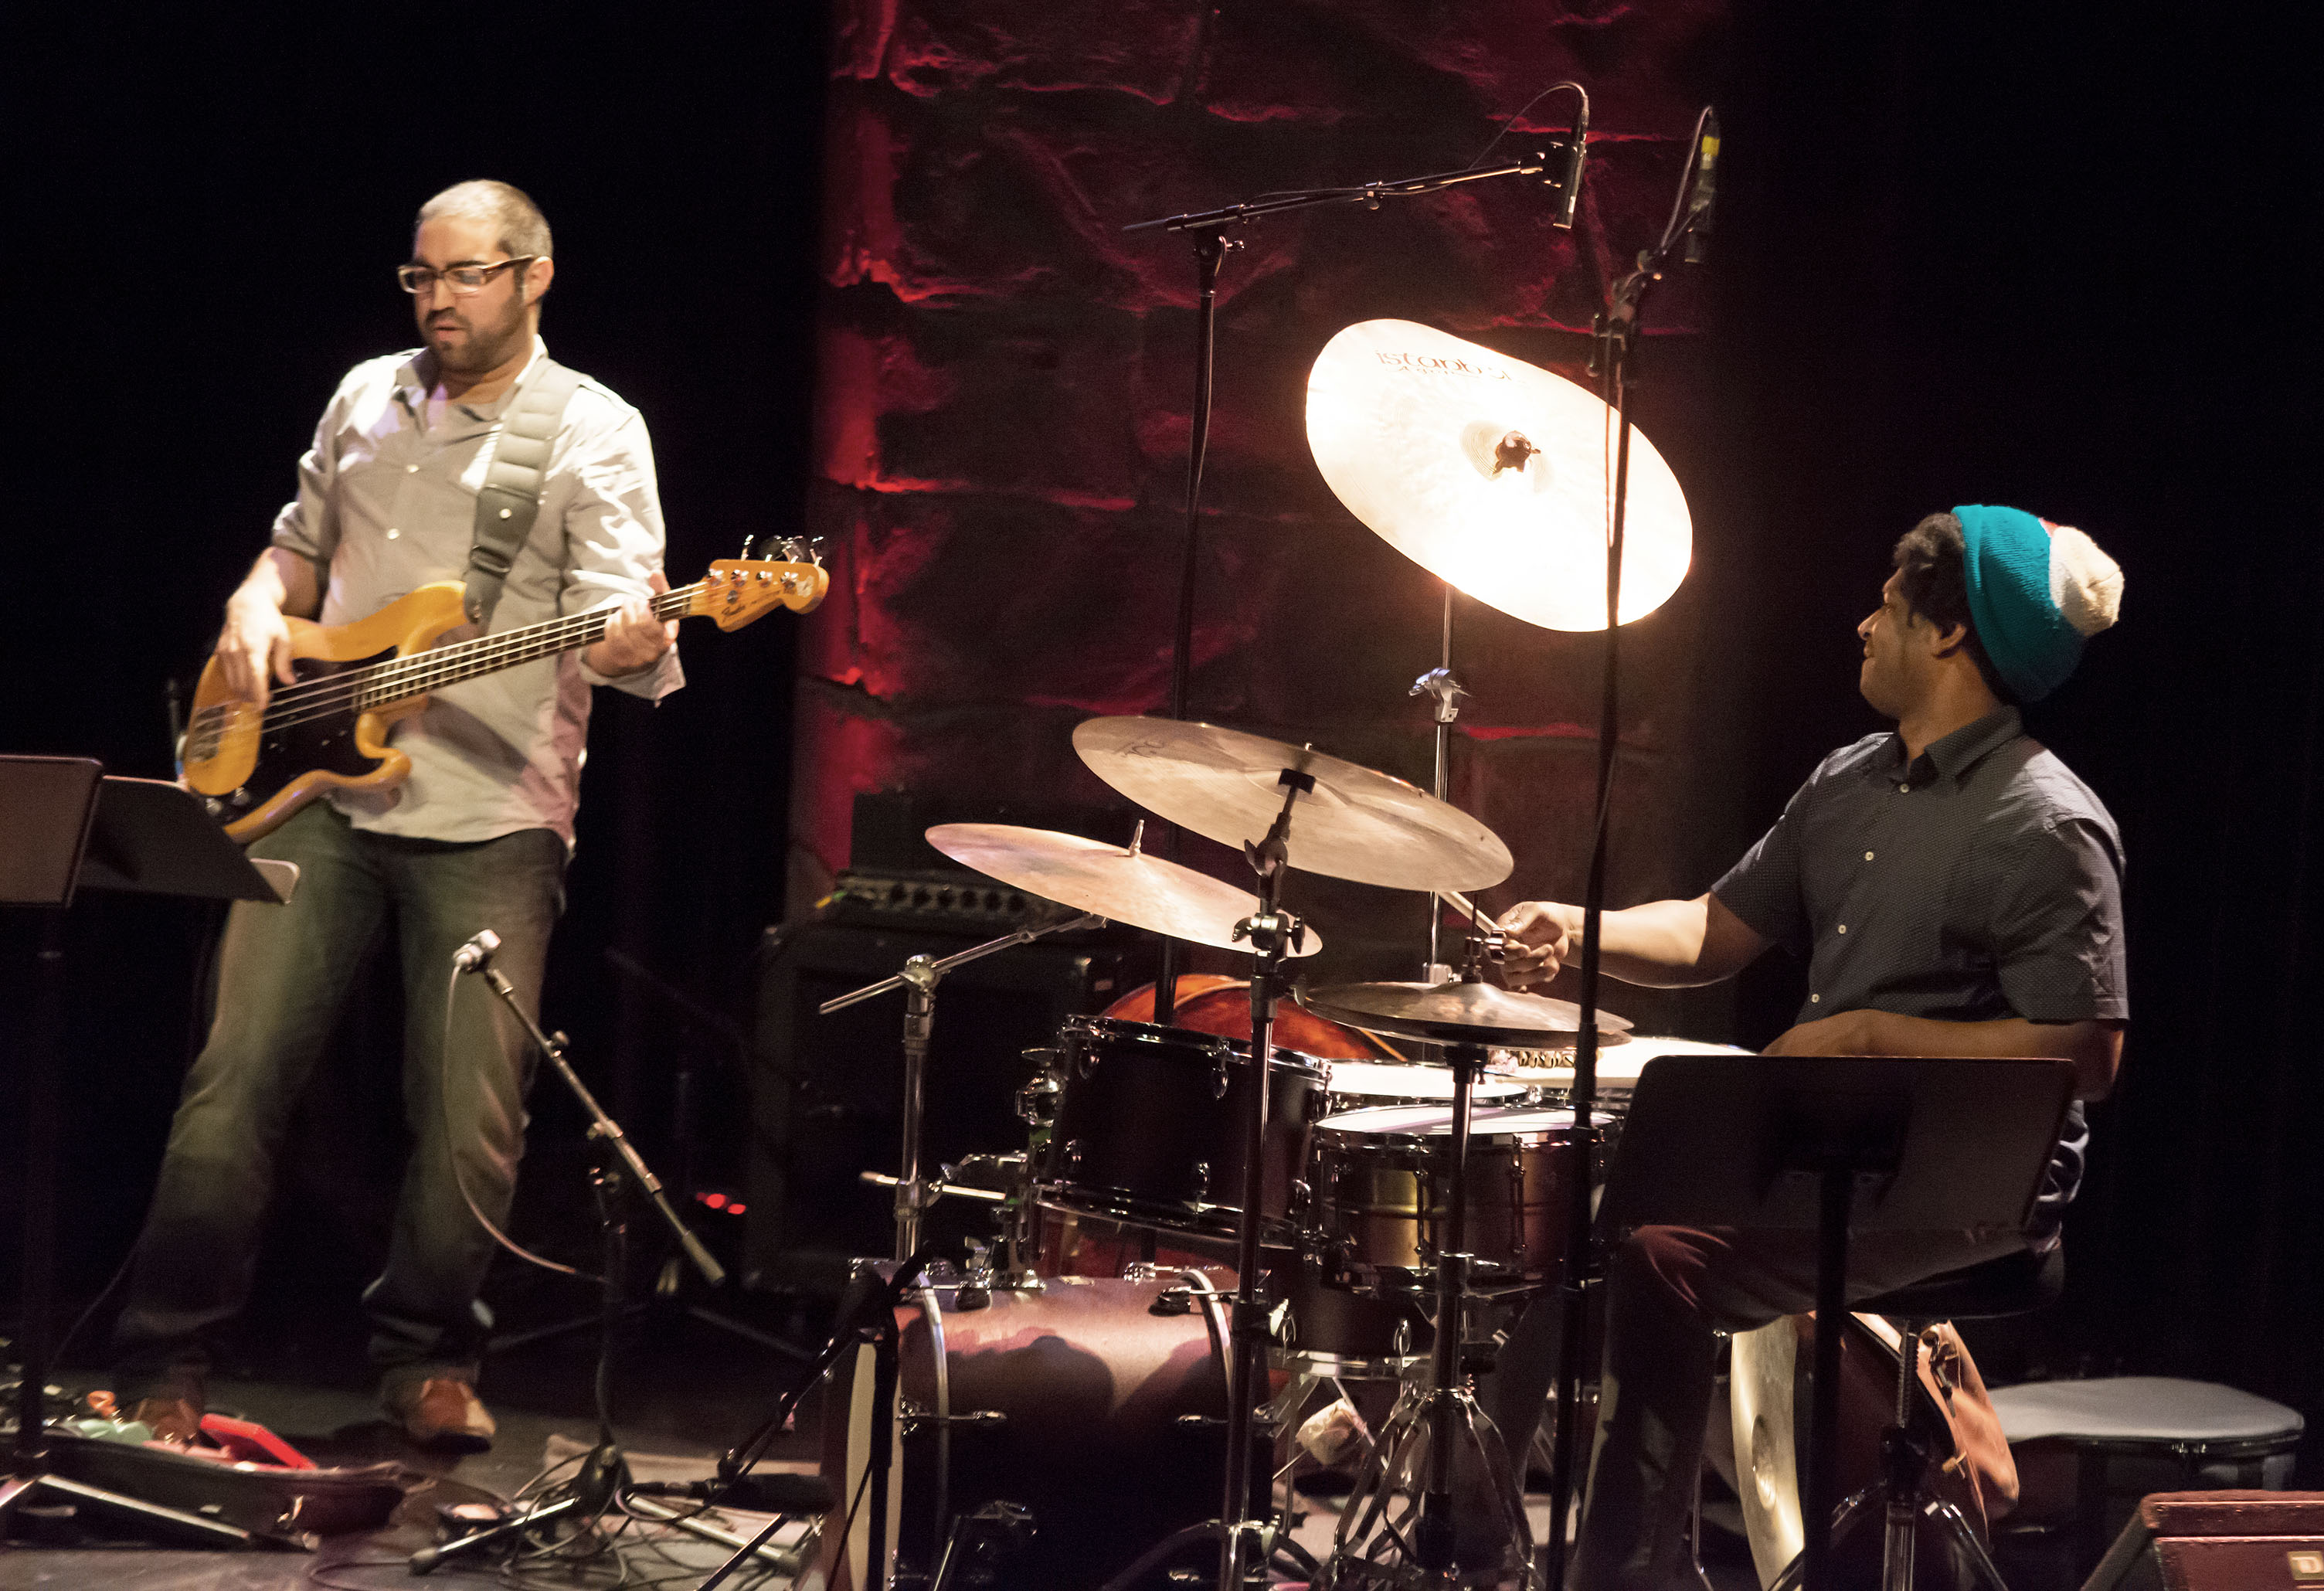 Ambrose Aklnmusire & Tigran at 2014 Festival International de Jazz de Montréal